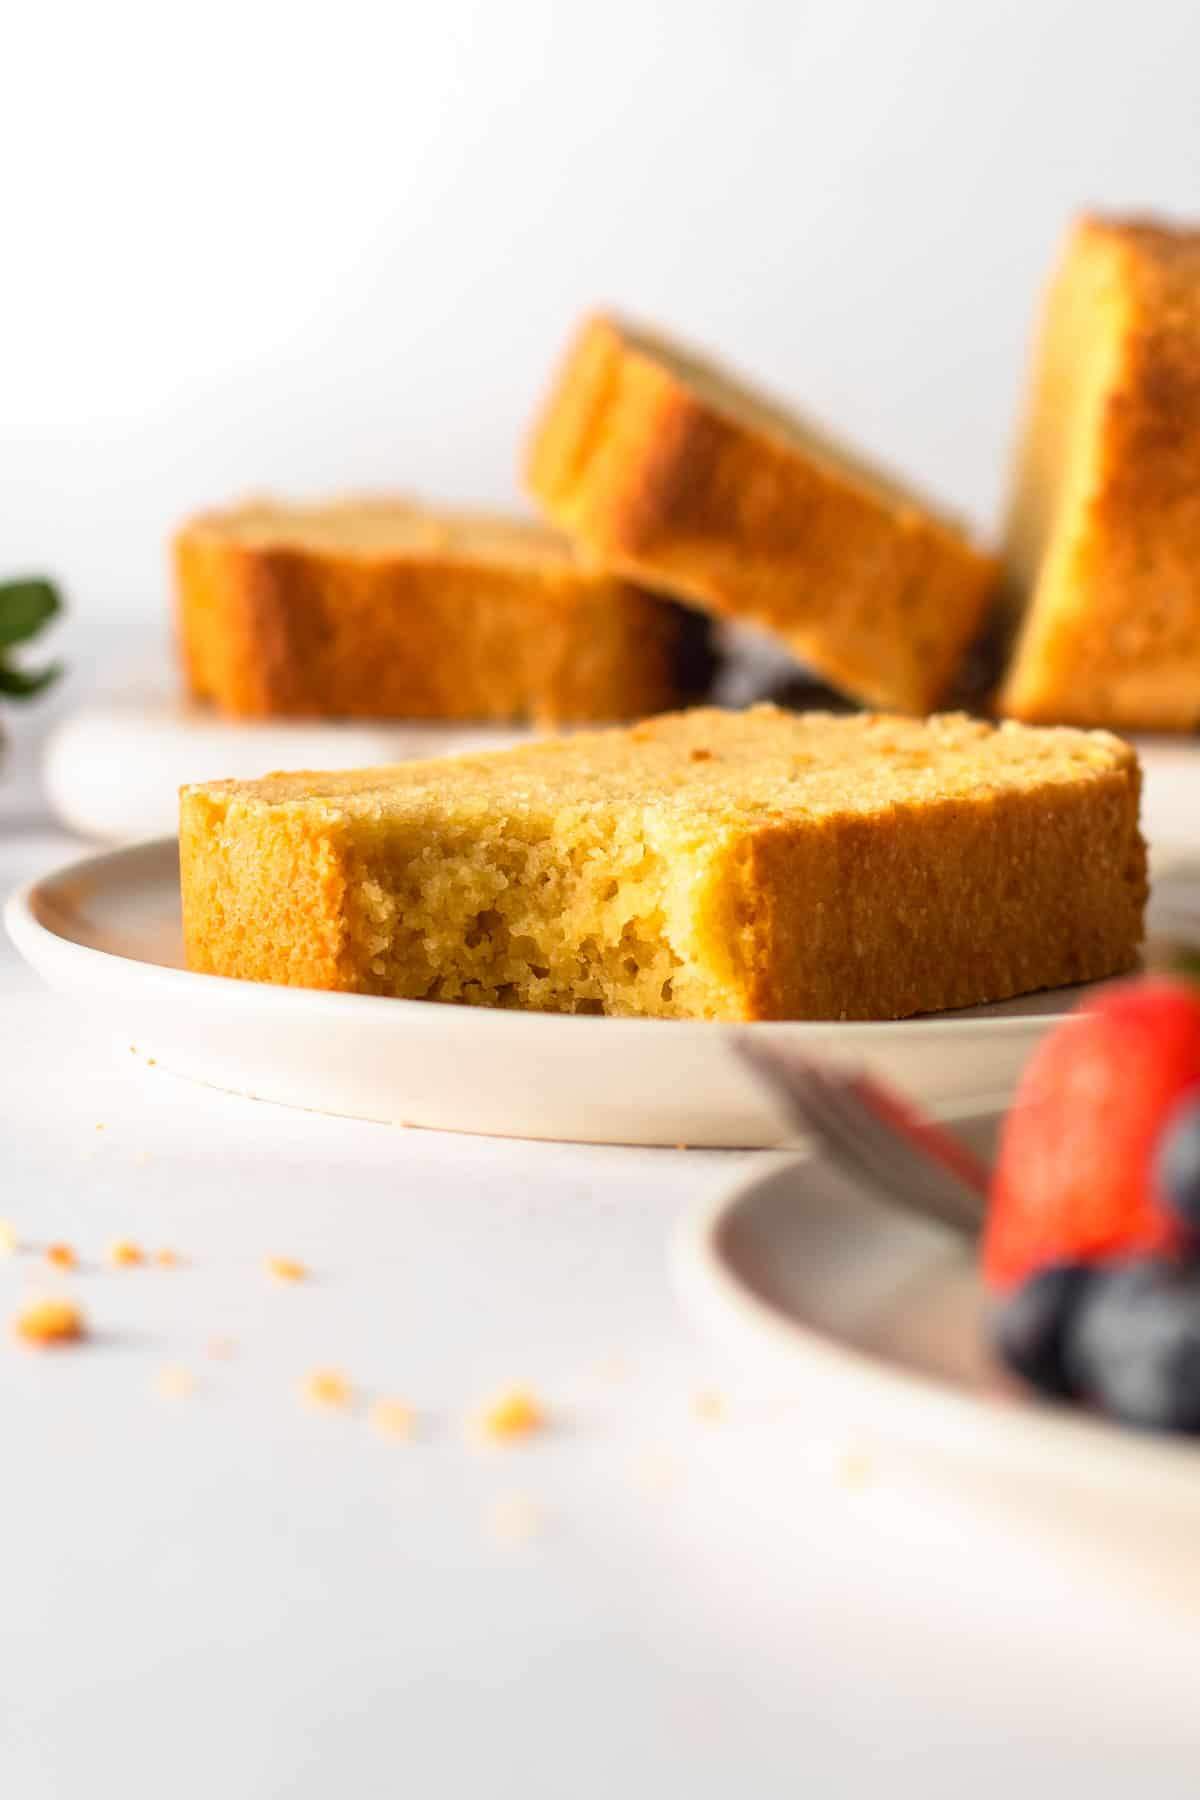 Gluten-free pound cake on a plate.